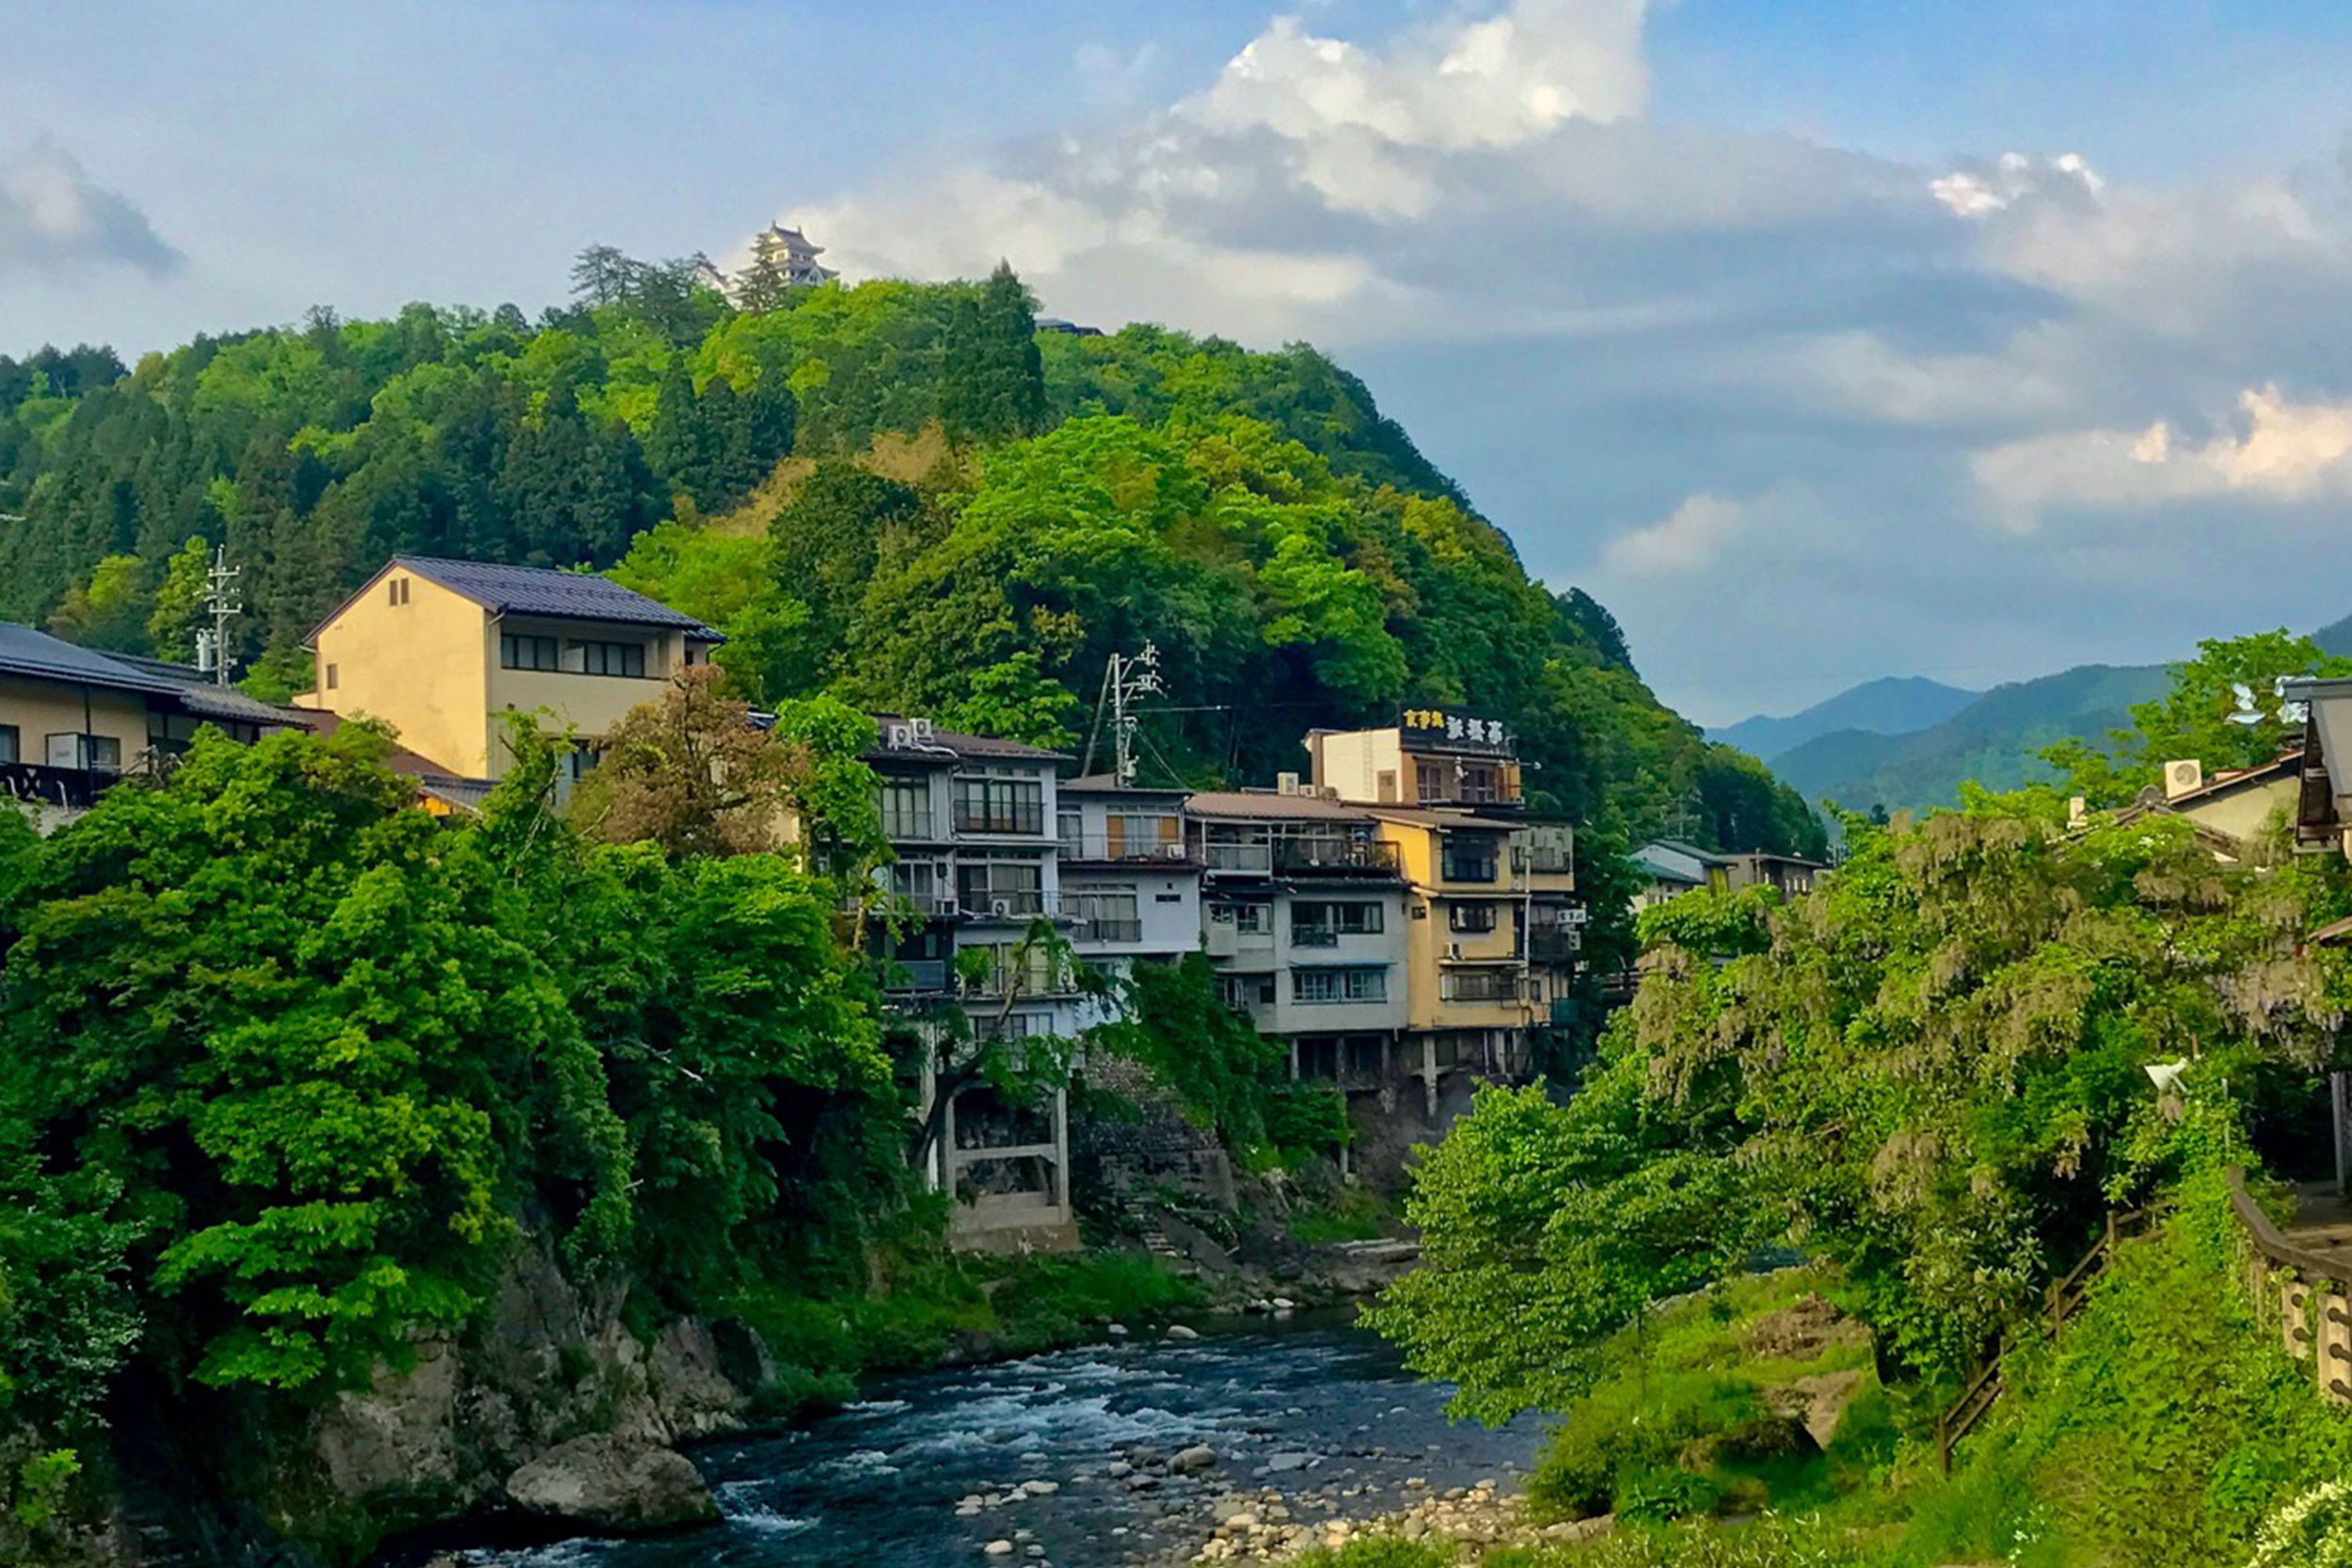 GuJo Hachiman, The Japan Alps